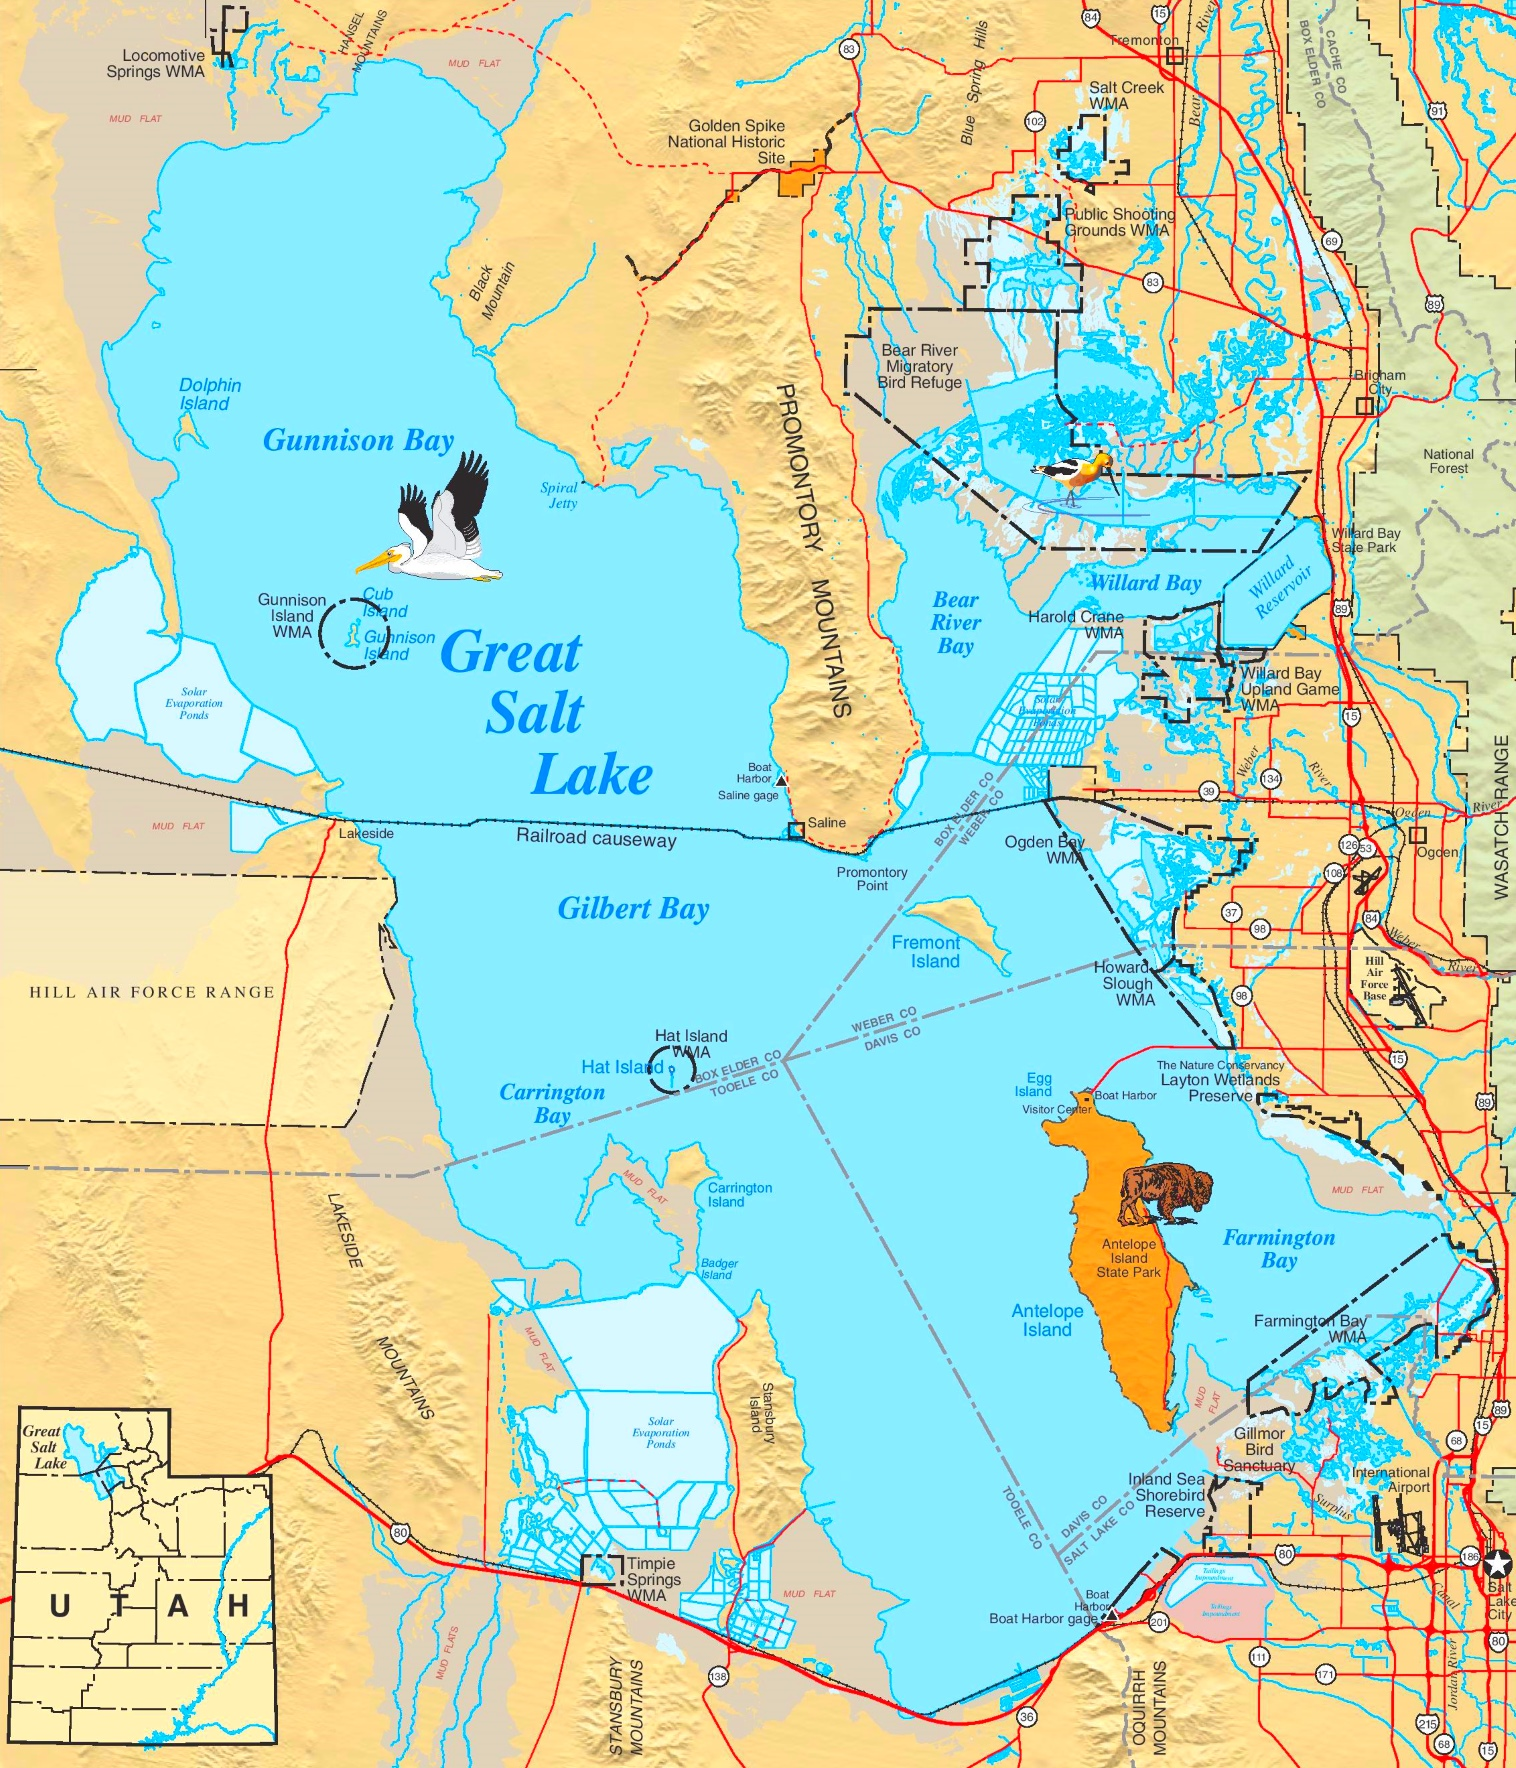 Great Salt Lake On Us Map Large detailed map of Great Salt Lake